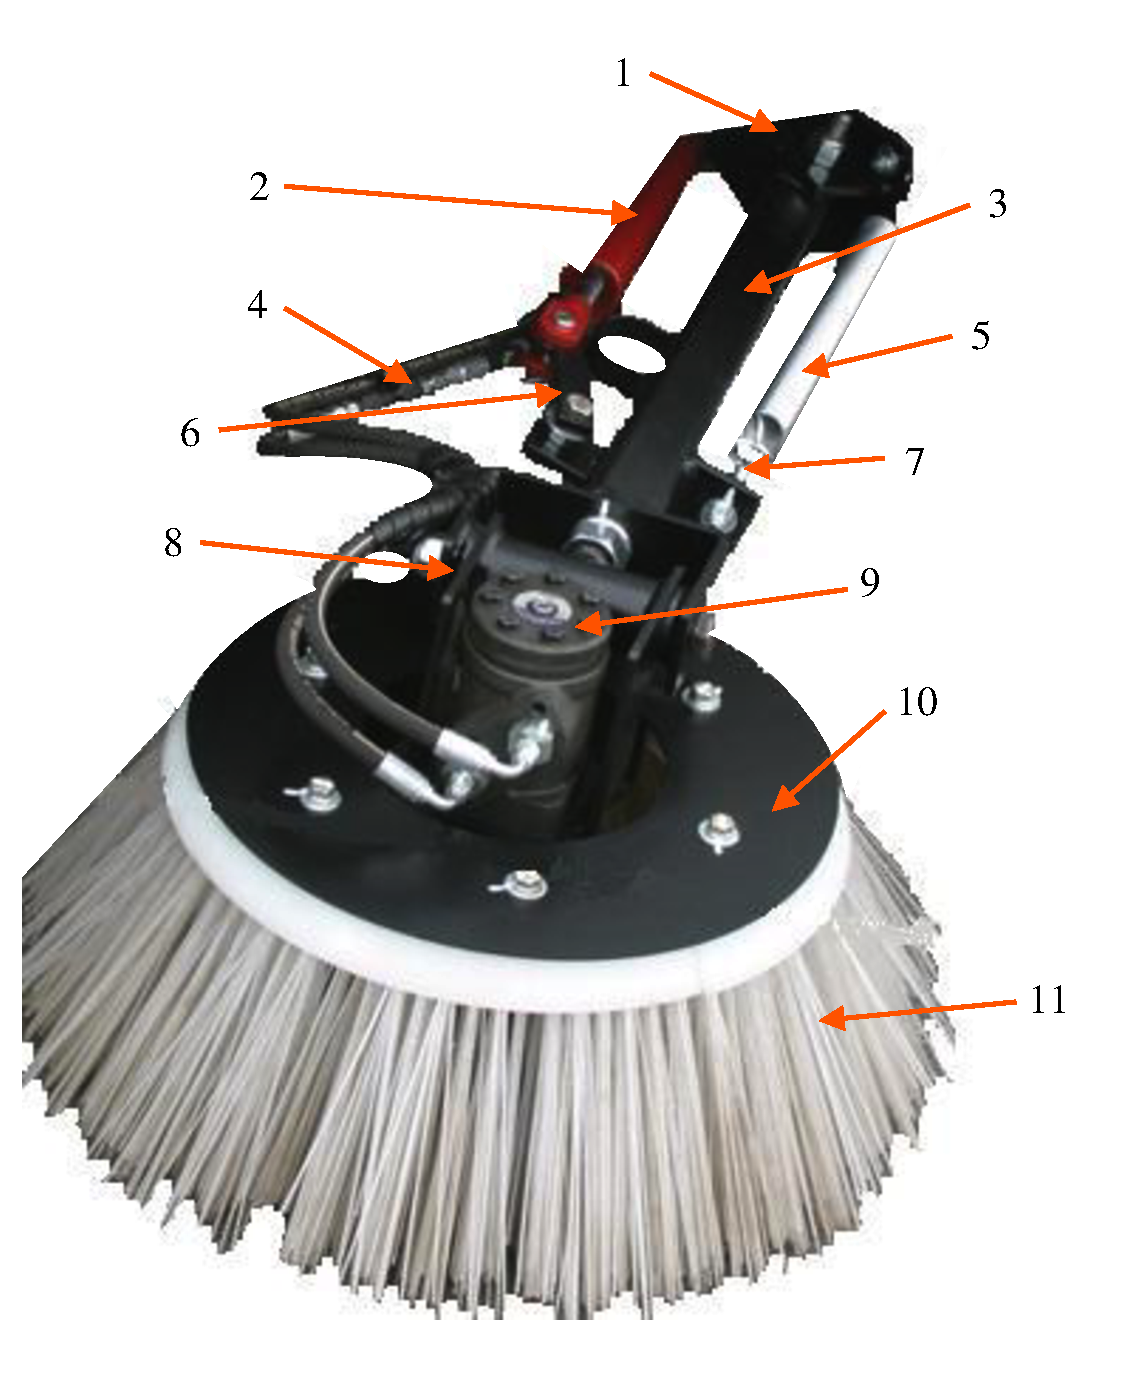 nh-200-osprey-passenger-side-broom-assembly.png